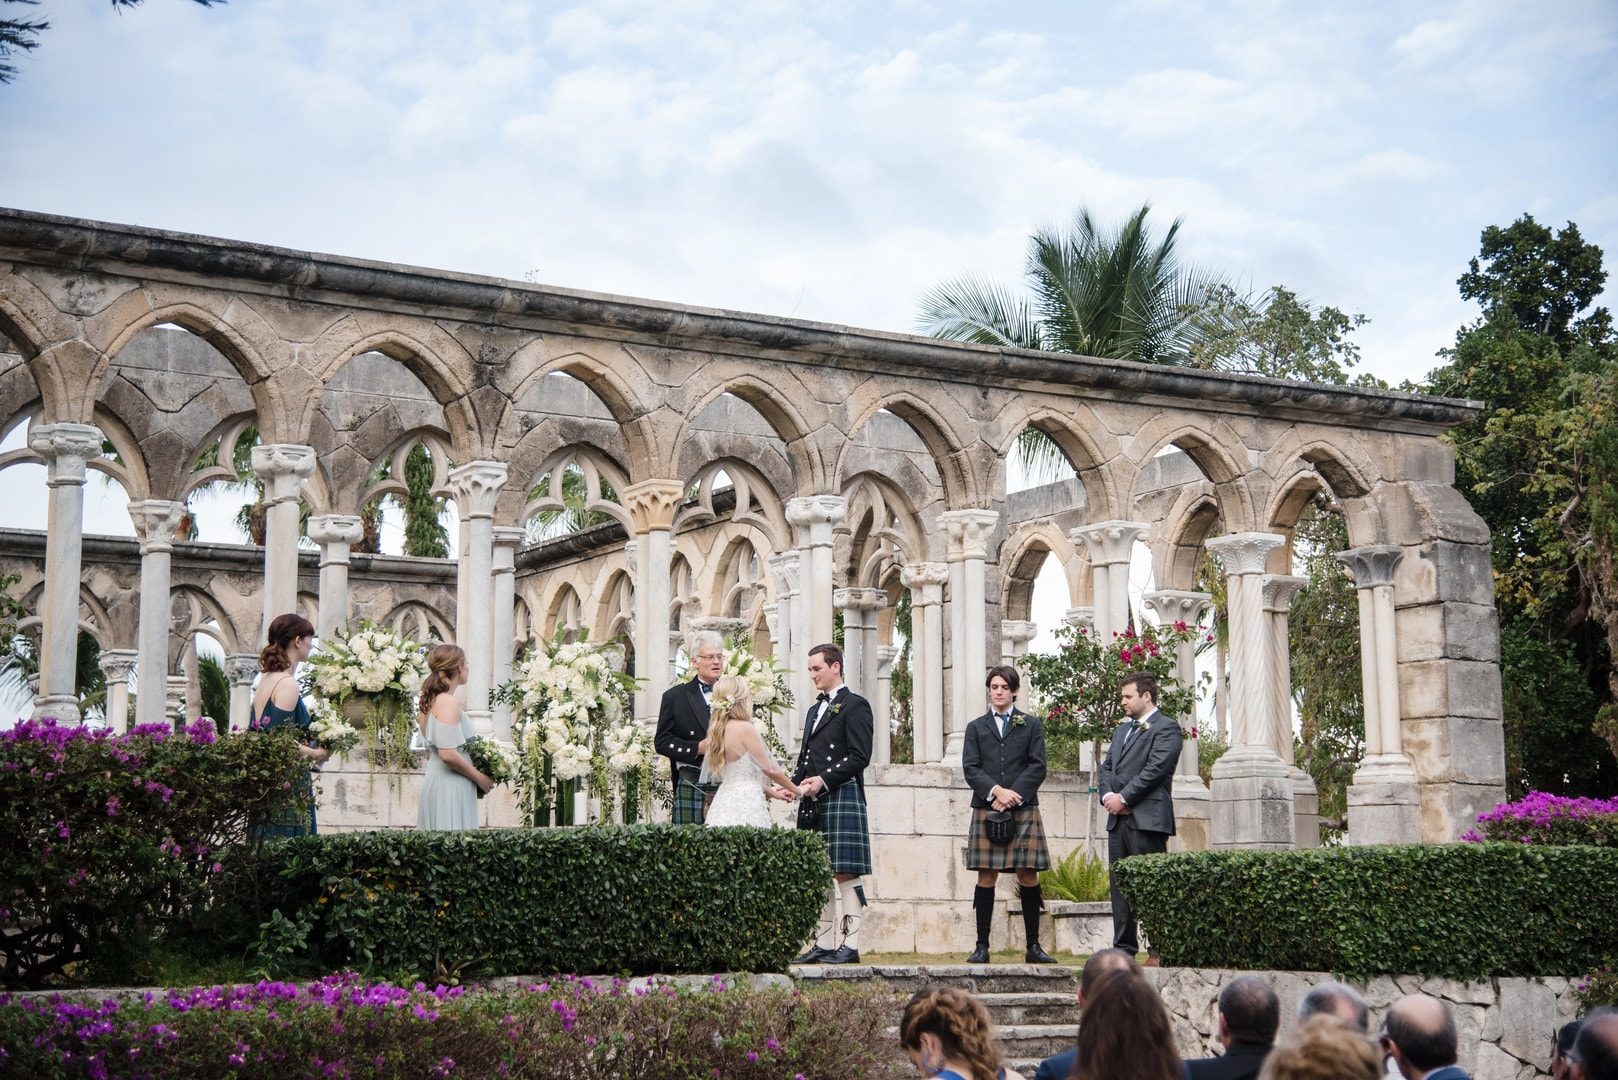 Gorgeous Destination Wedding at Four Seasons, Paradise Island, Photography by Susan Stripling Photography for Luxury Destination Wedding network Adriana Weddings